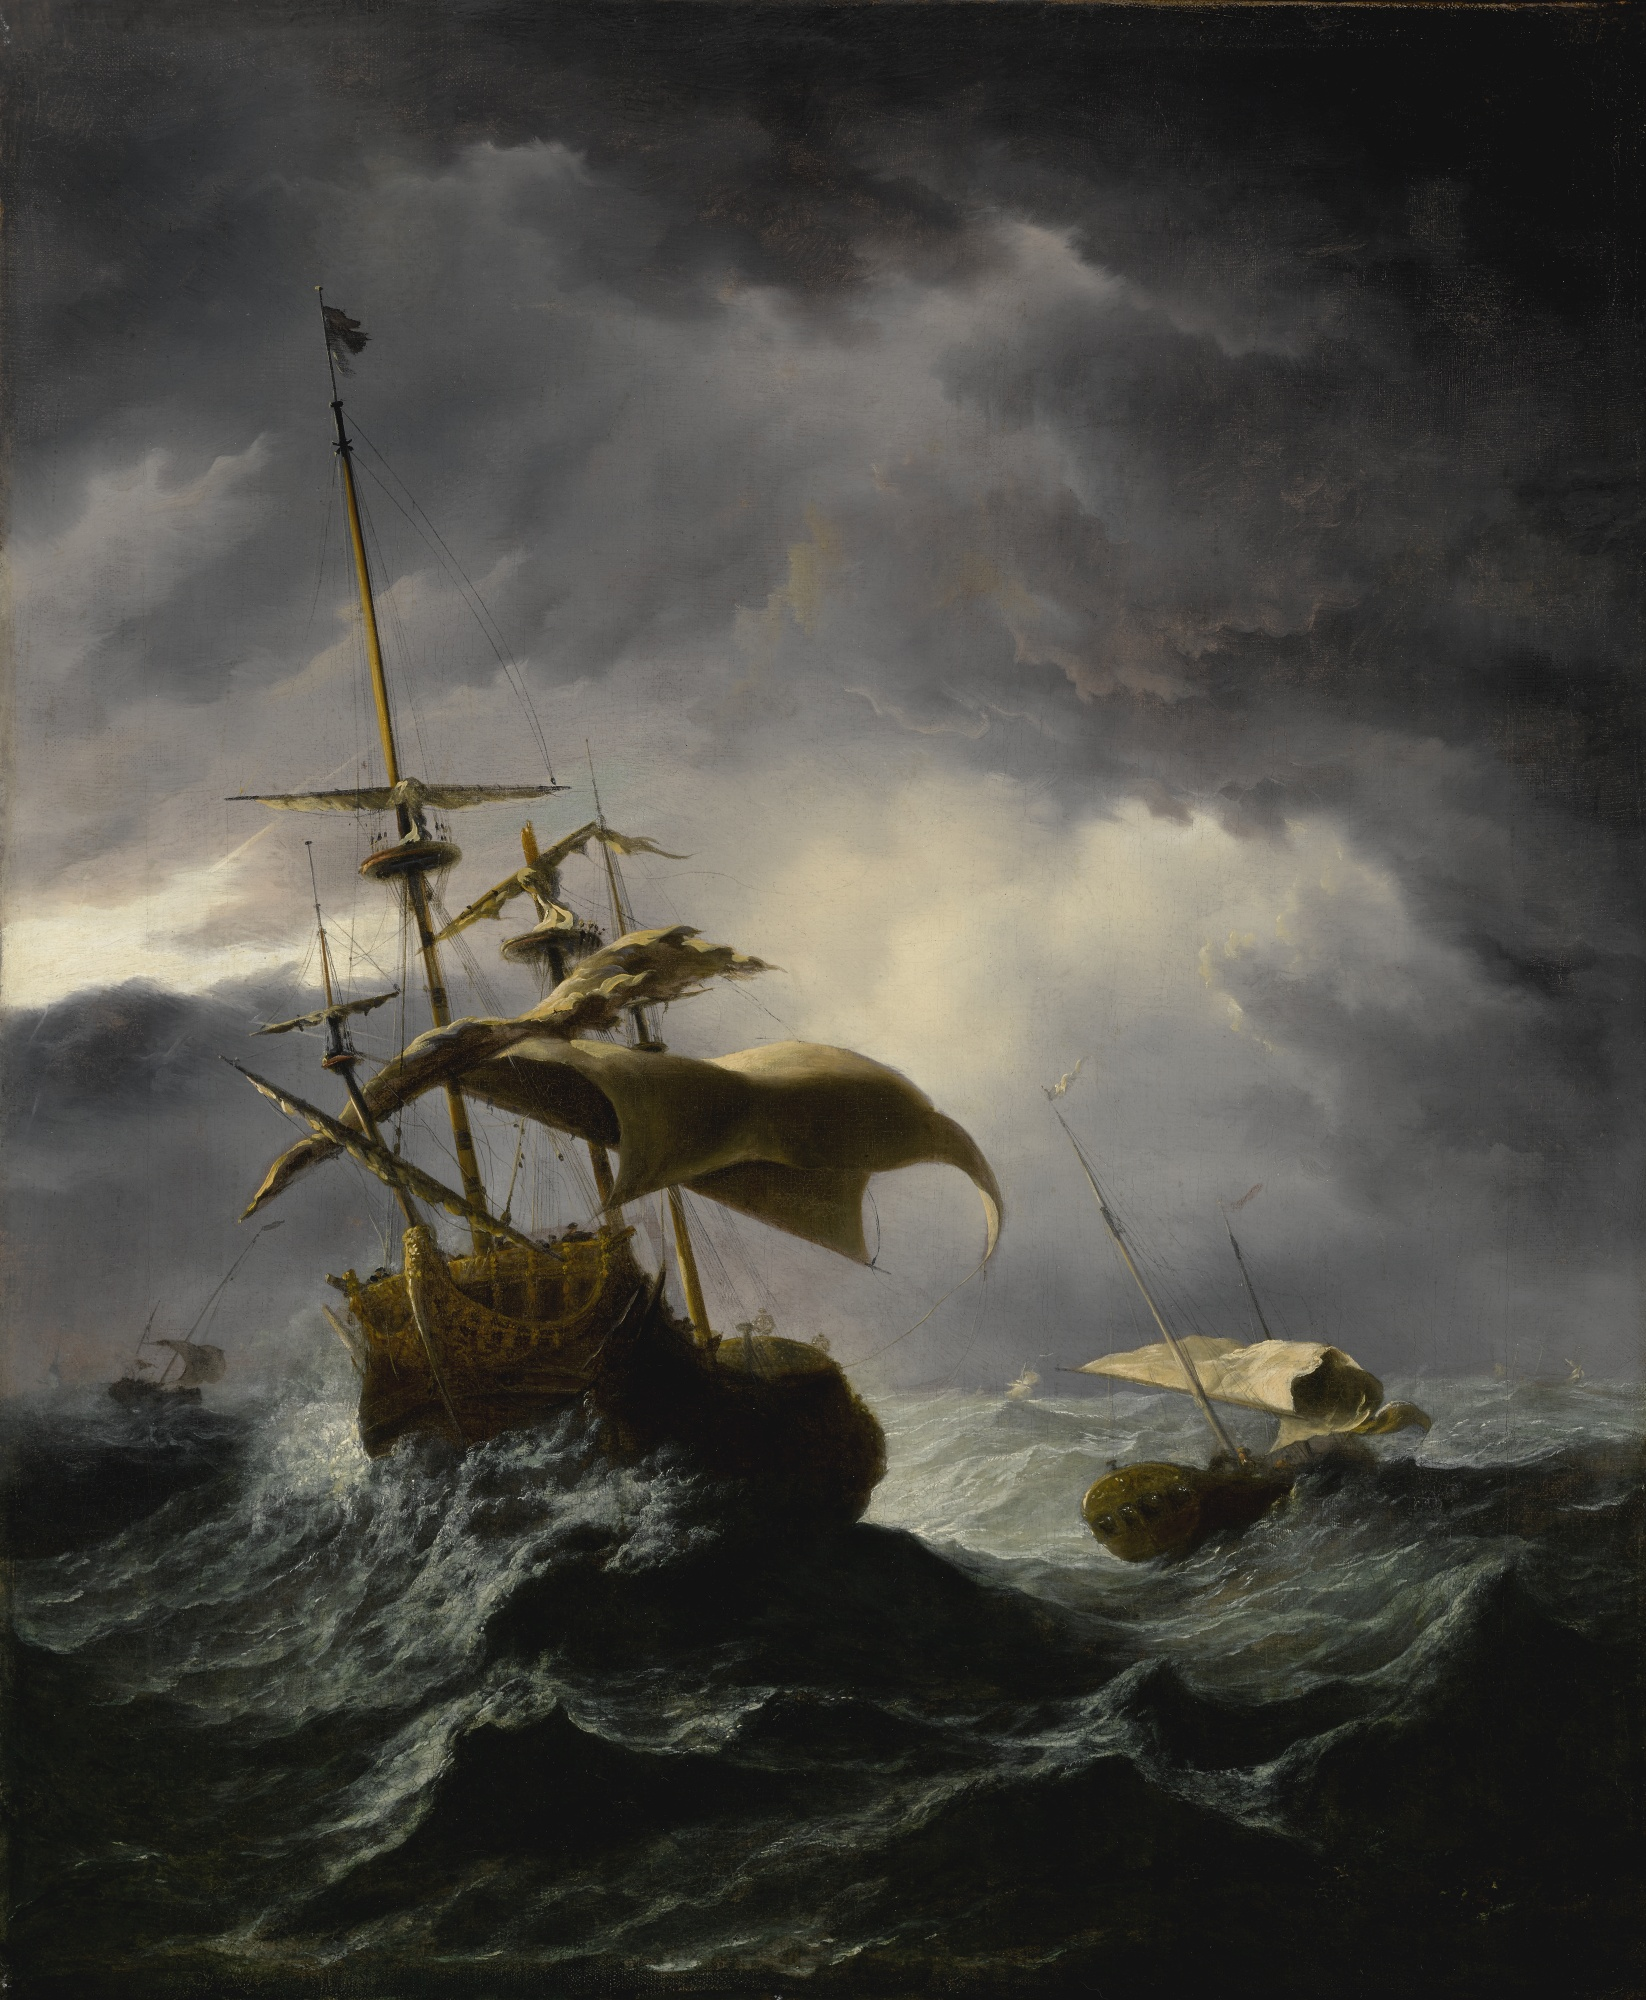 An English Ship in a Gale Attempting to Lie-In, by a follower of Willem van de Velde the Younger